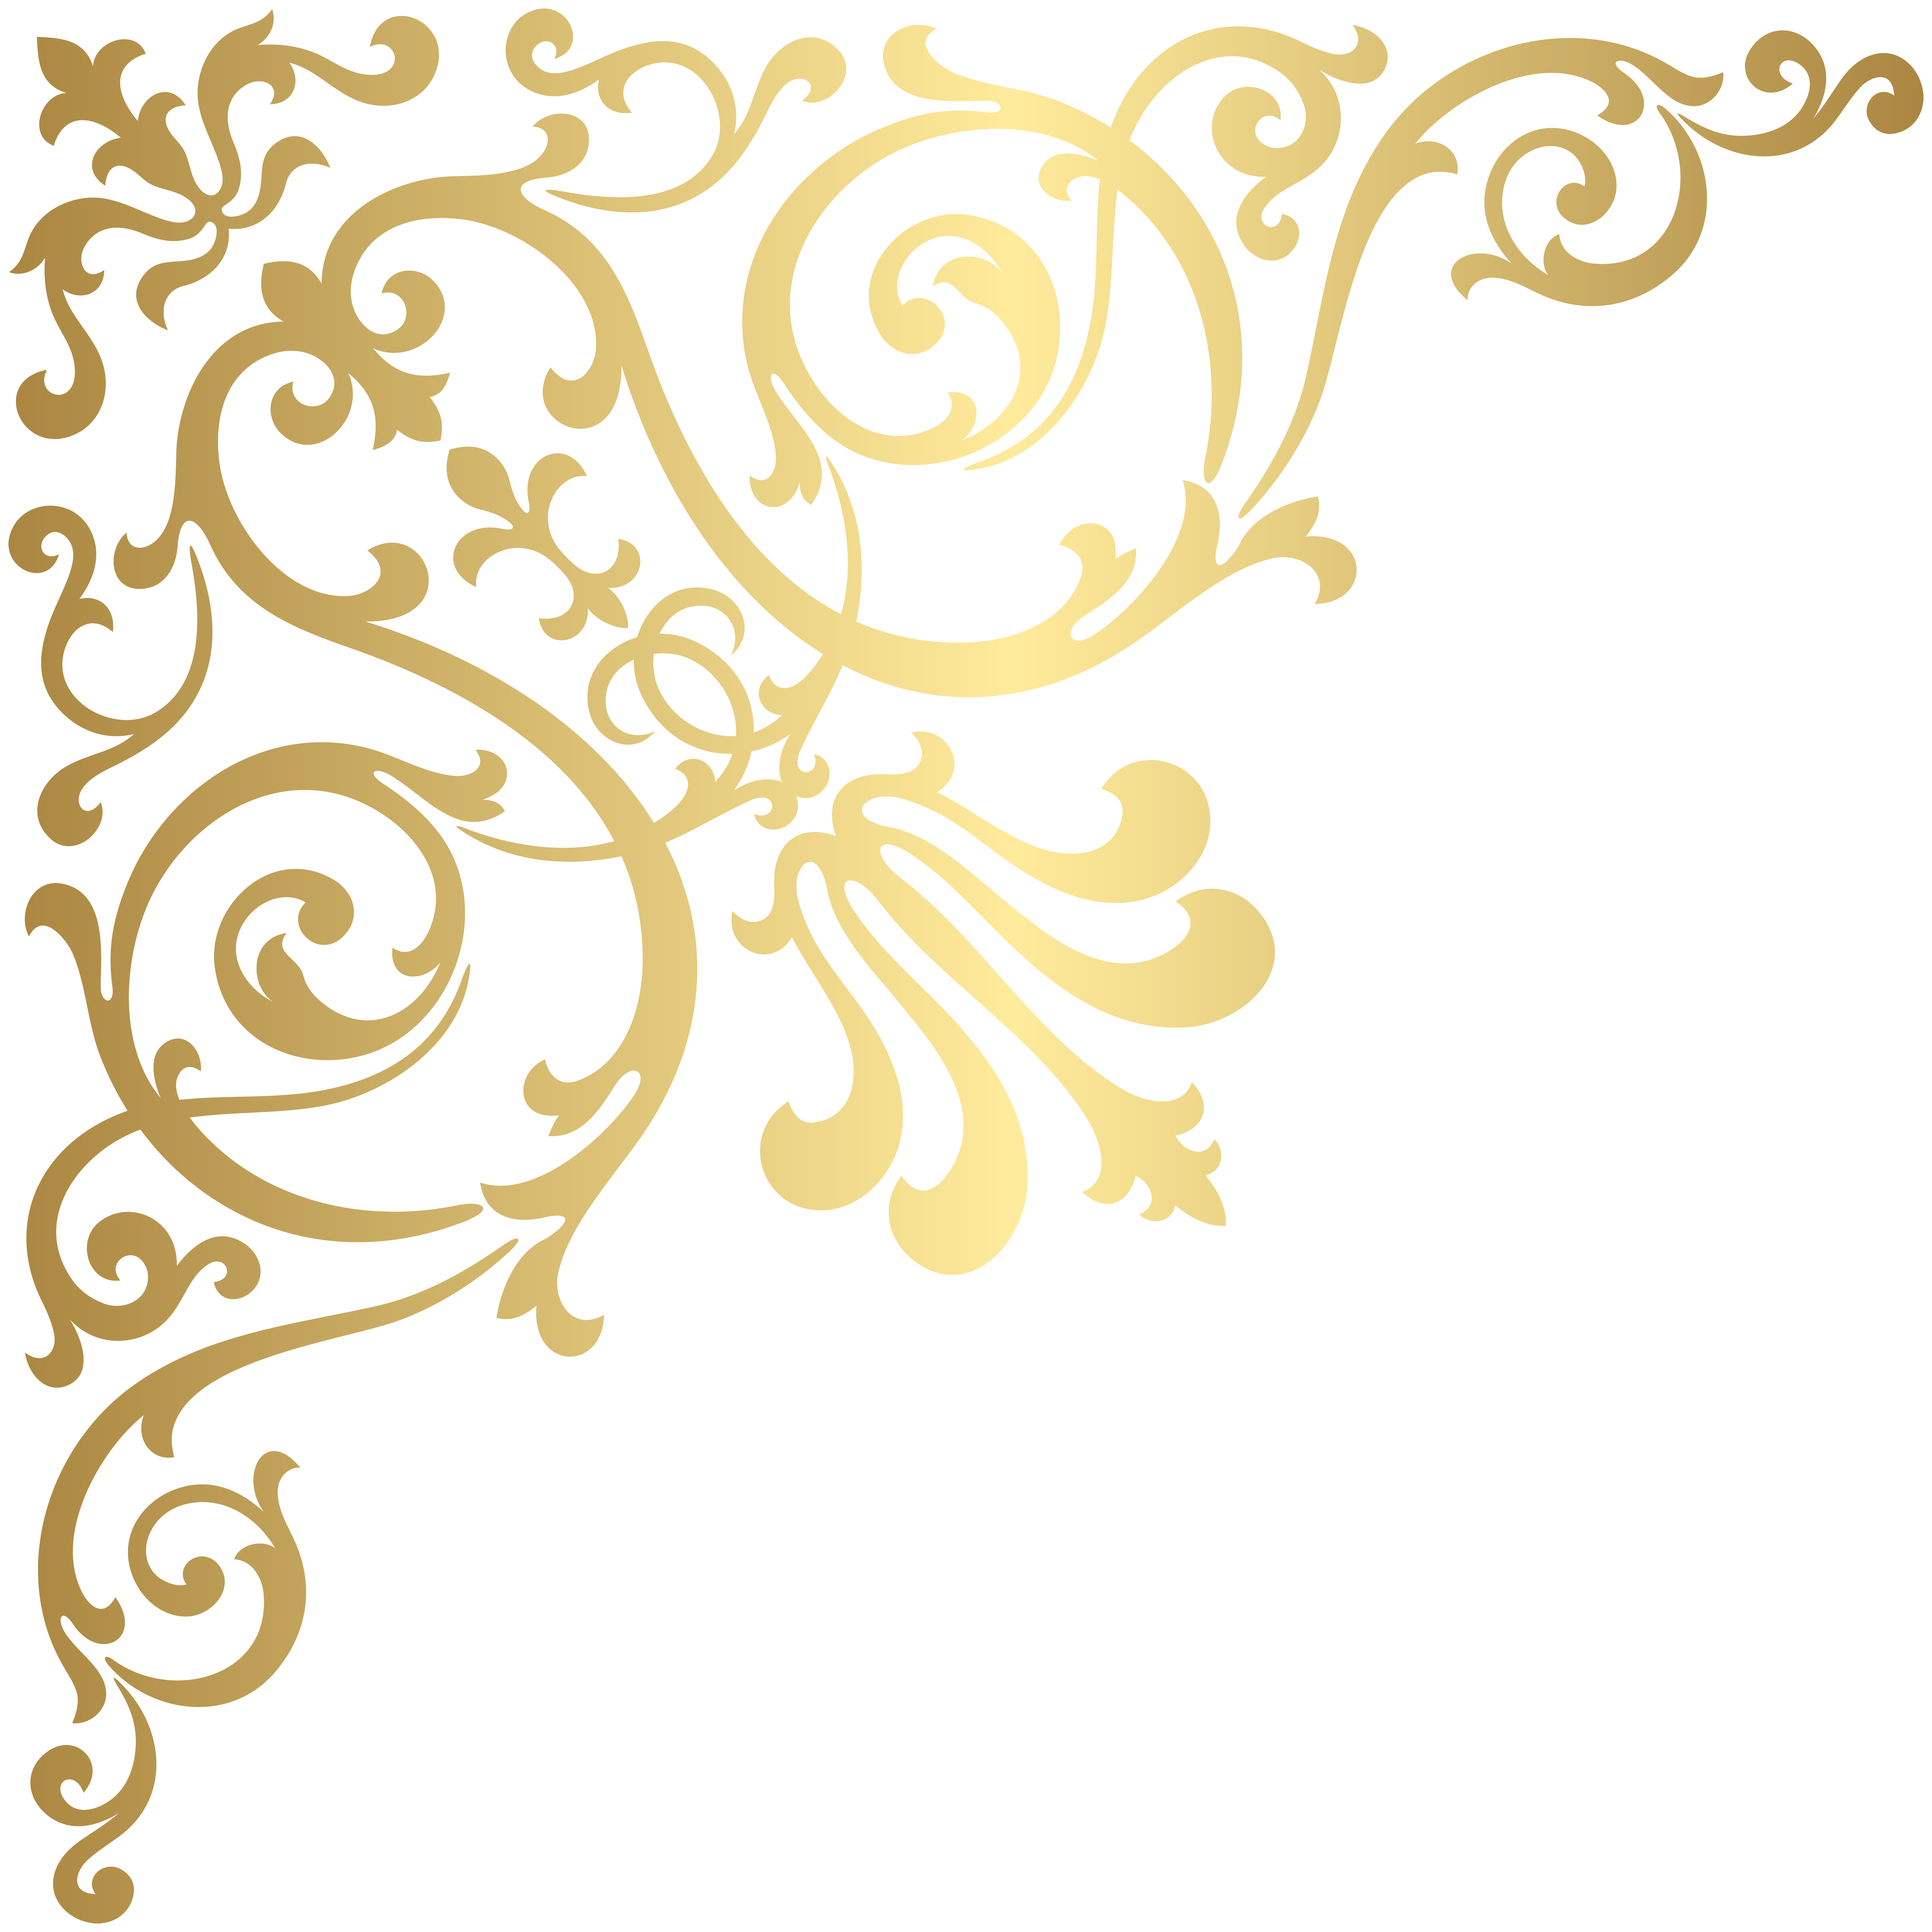 Gold Corner Transparent Png Clip Art Gallery Yopriceville High Quality Images And Transparent Png Free Clipart Free Clip Art Free Art Clip Art